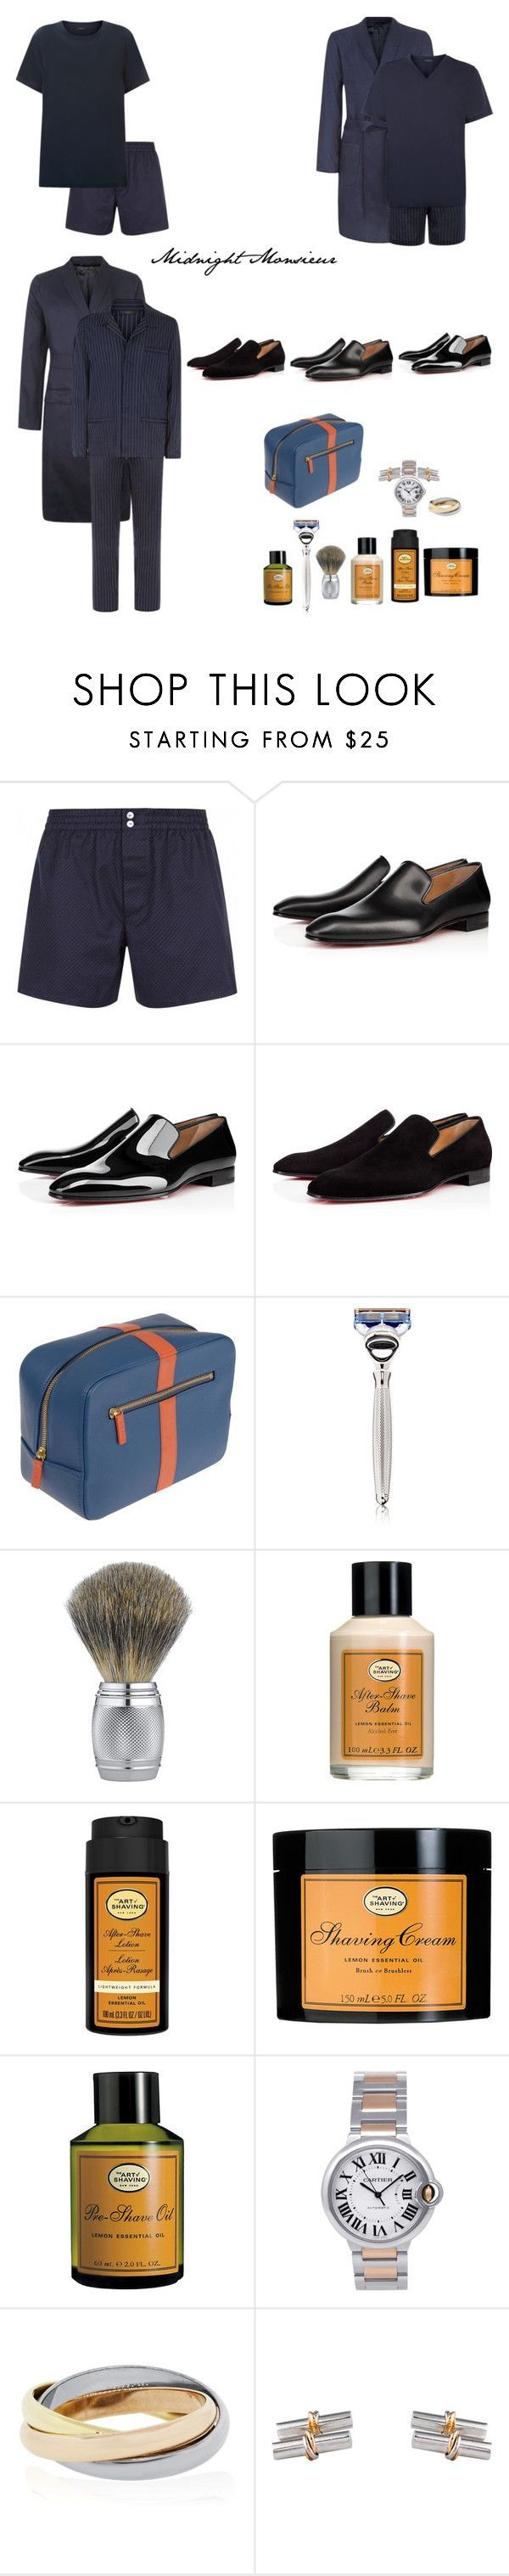 """""""Midnight Monsieur"""" by fashionnovice86 ❤ liked on Polyvore featuring Christian Louboutin, STOW, The Art of Shaving, Cartier, men's fashion and menswear"""